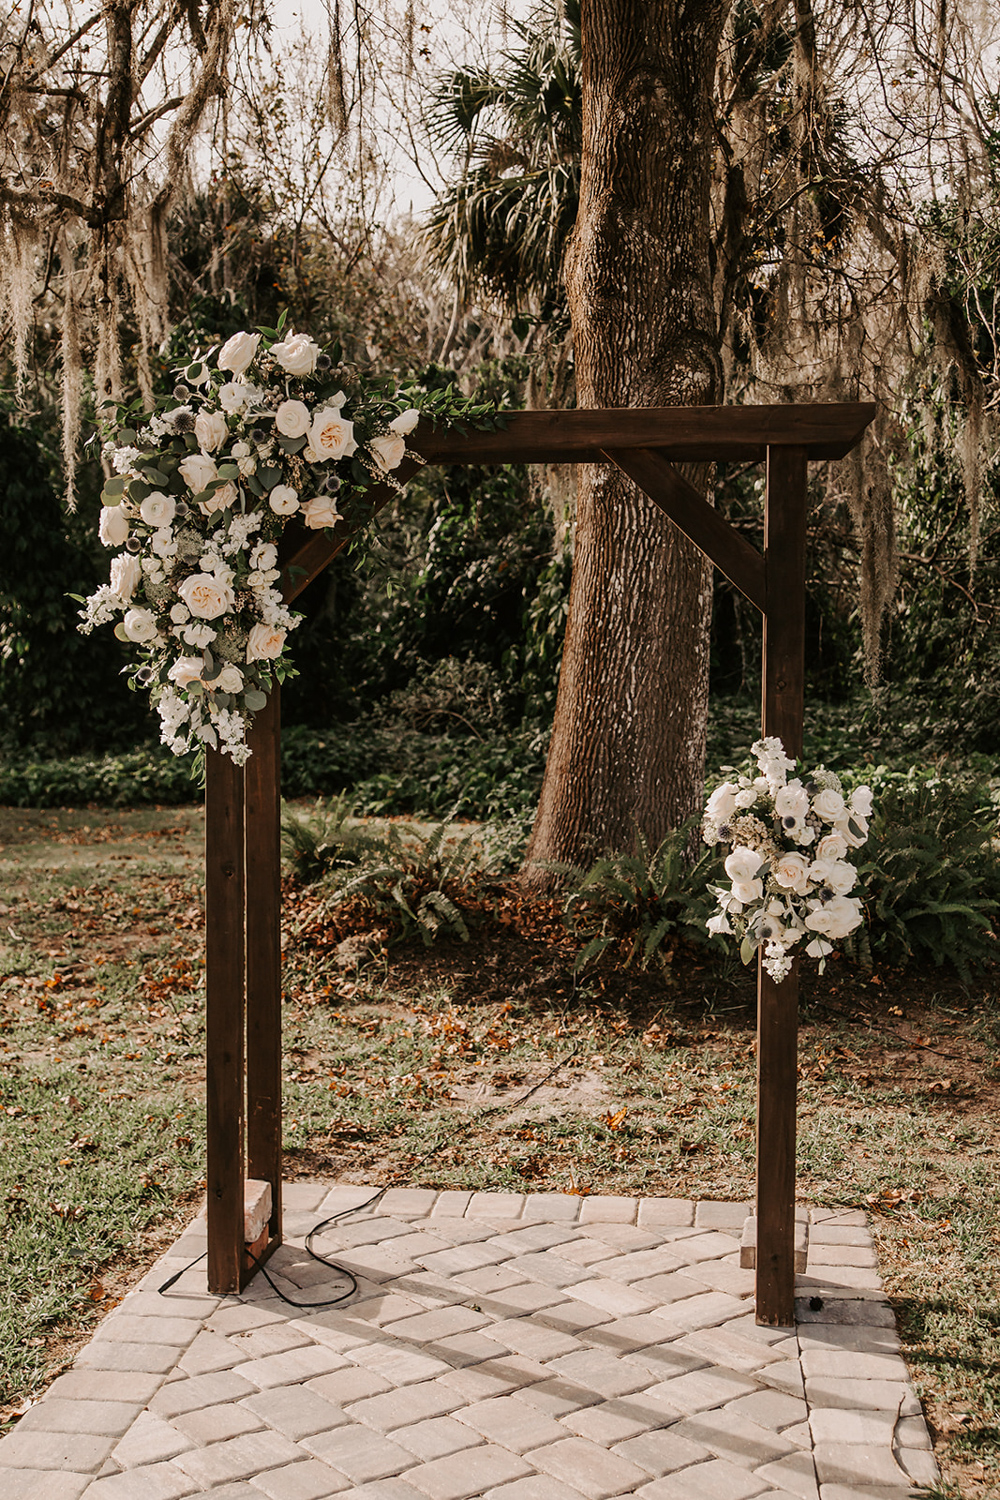 rustic wood ceremony arch with large white and greenery floral arrangement